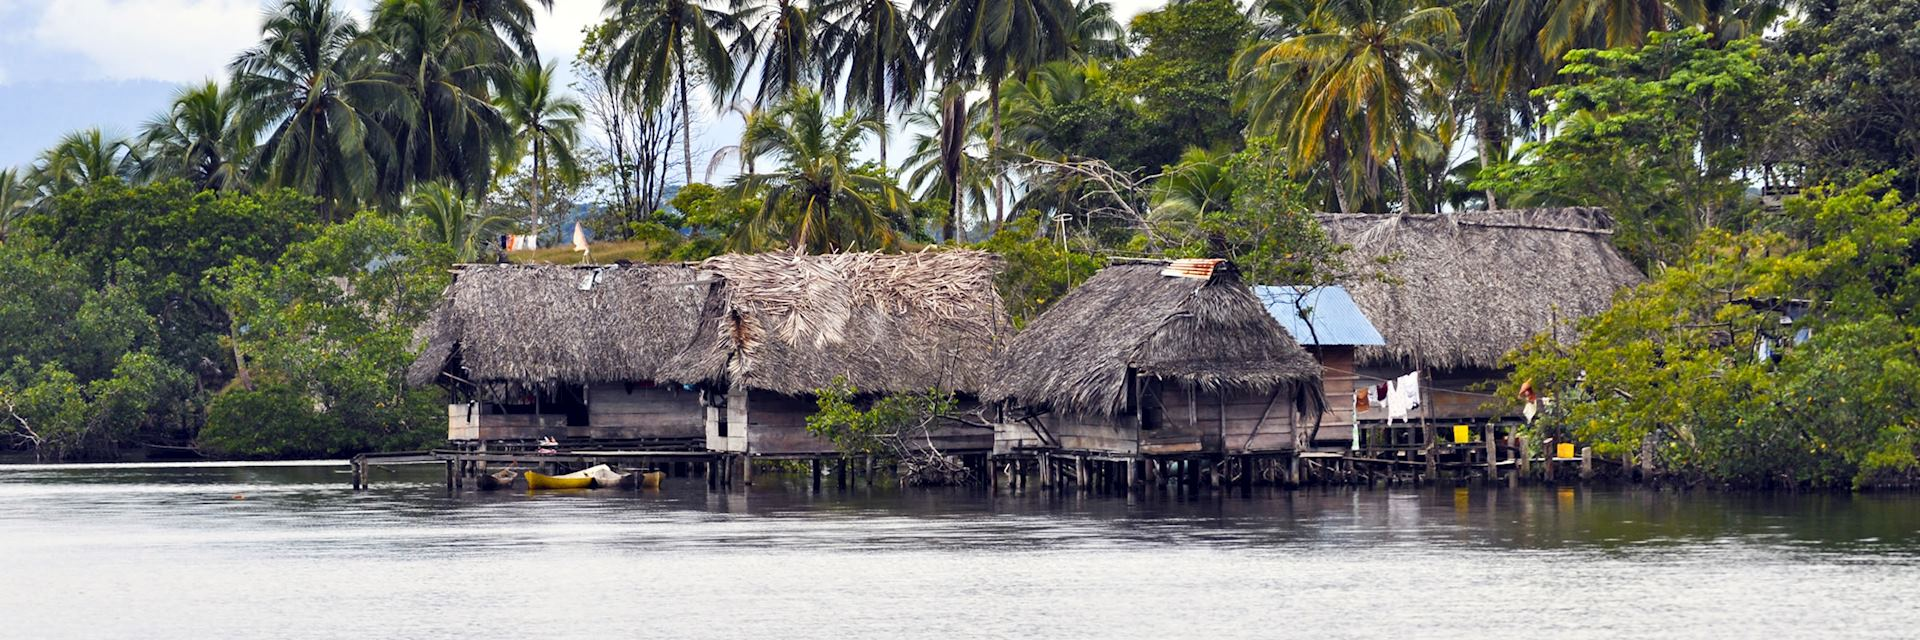 Indigenous Village near Bocas Del Toro